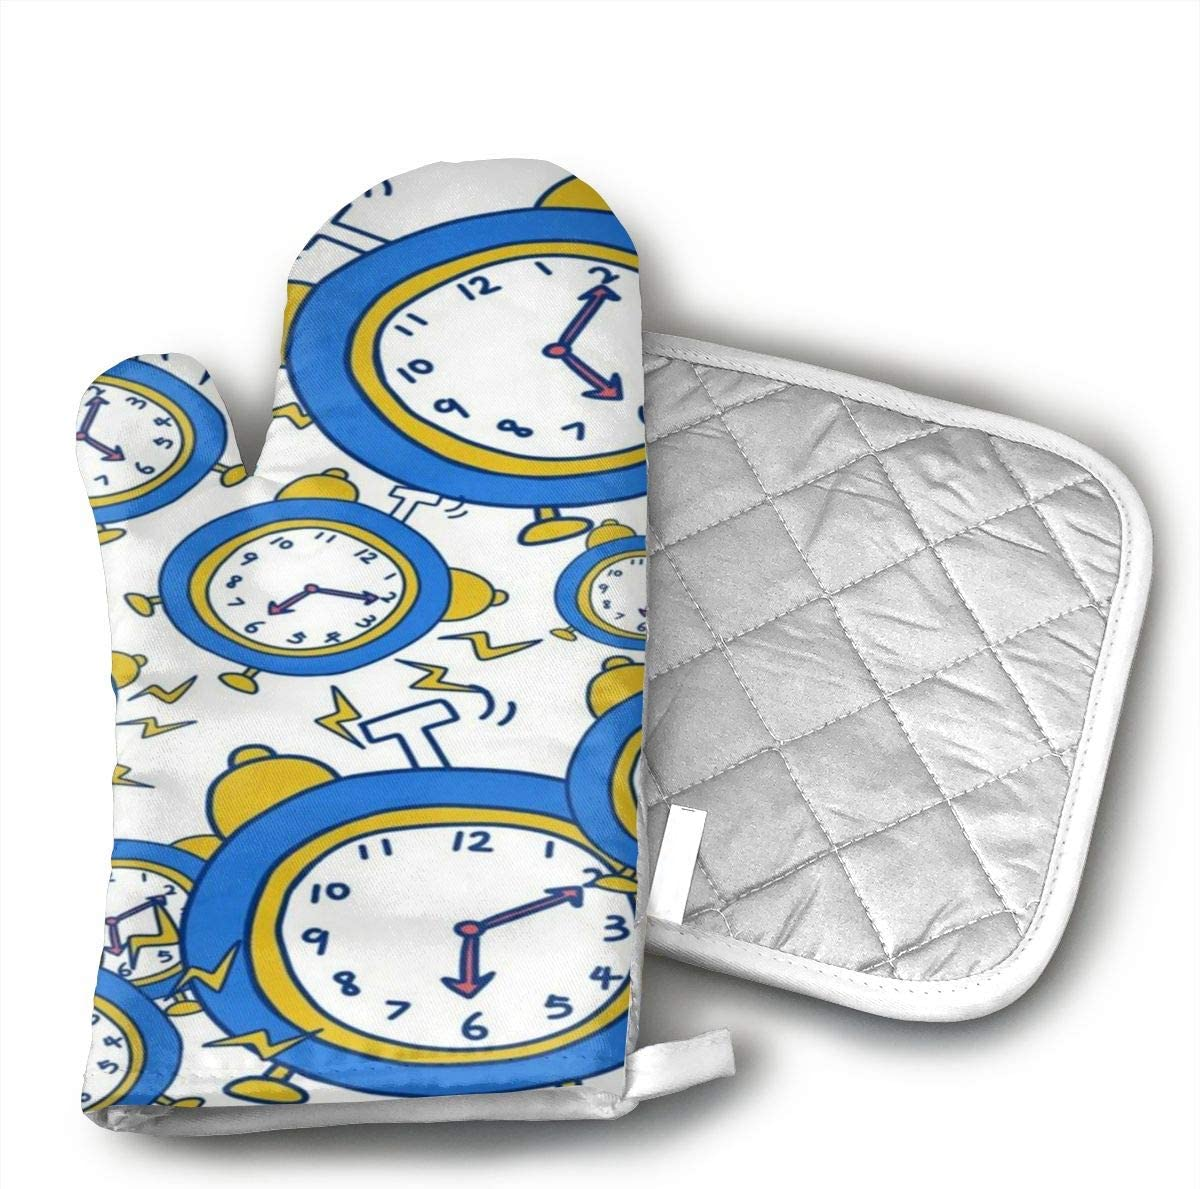 Alarm Clock Morning Oven Mitts,Heat Resistant to 502 F£¬Non Slip Kitchen Oven Gloves for Cooking,Baking,Grilling,Barbecue Potholders